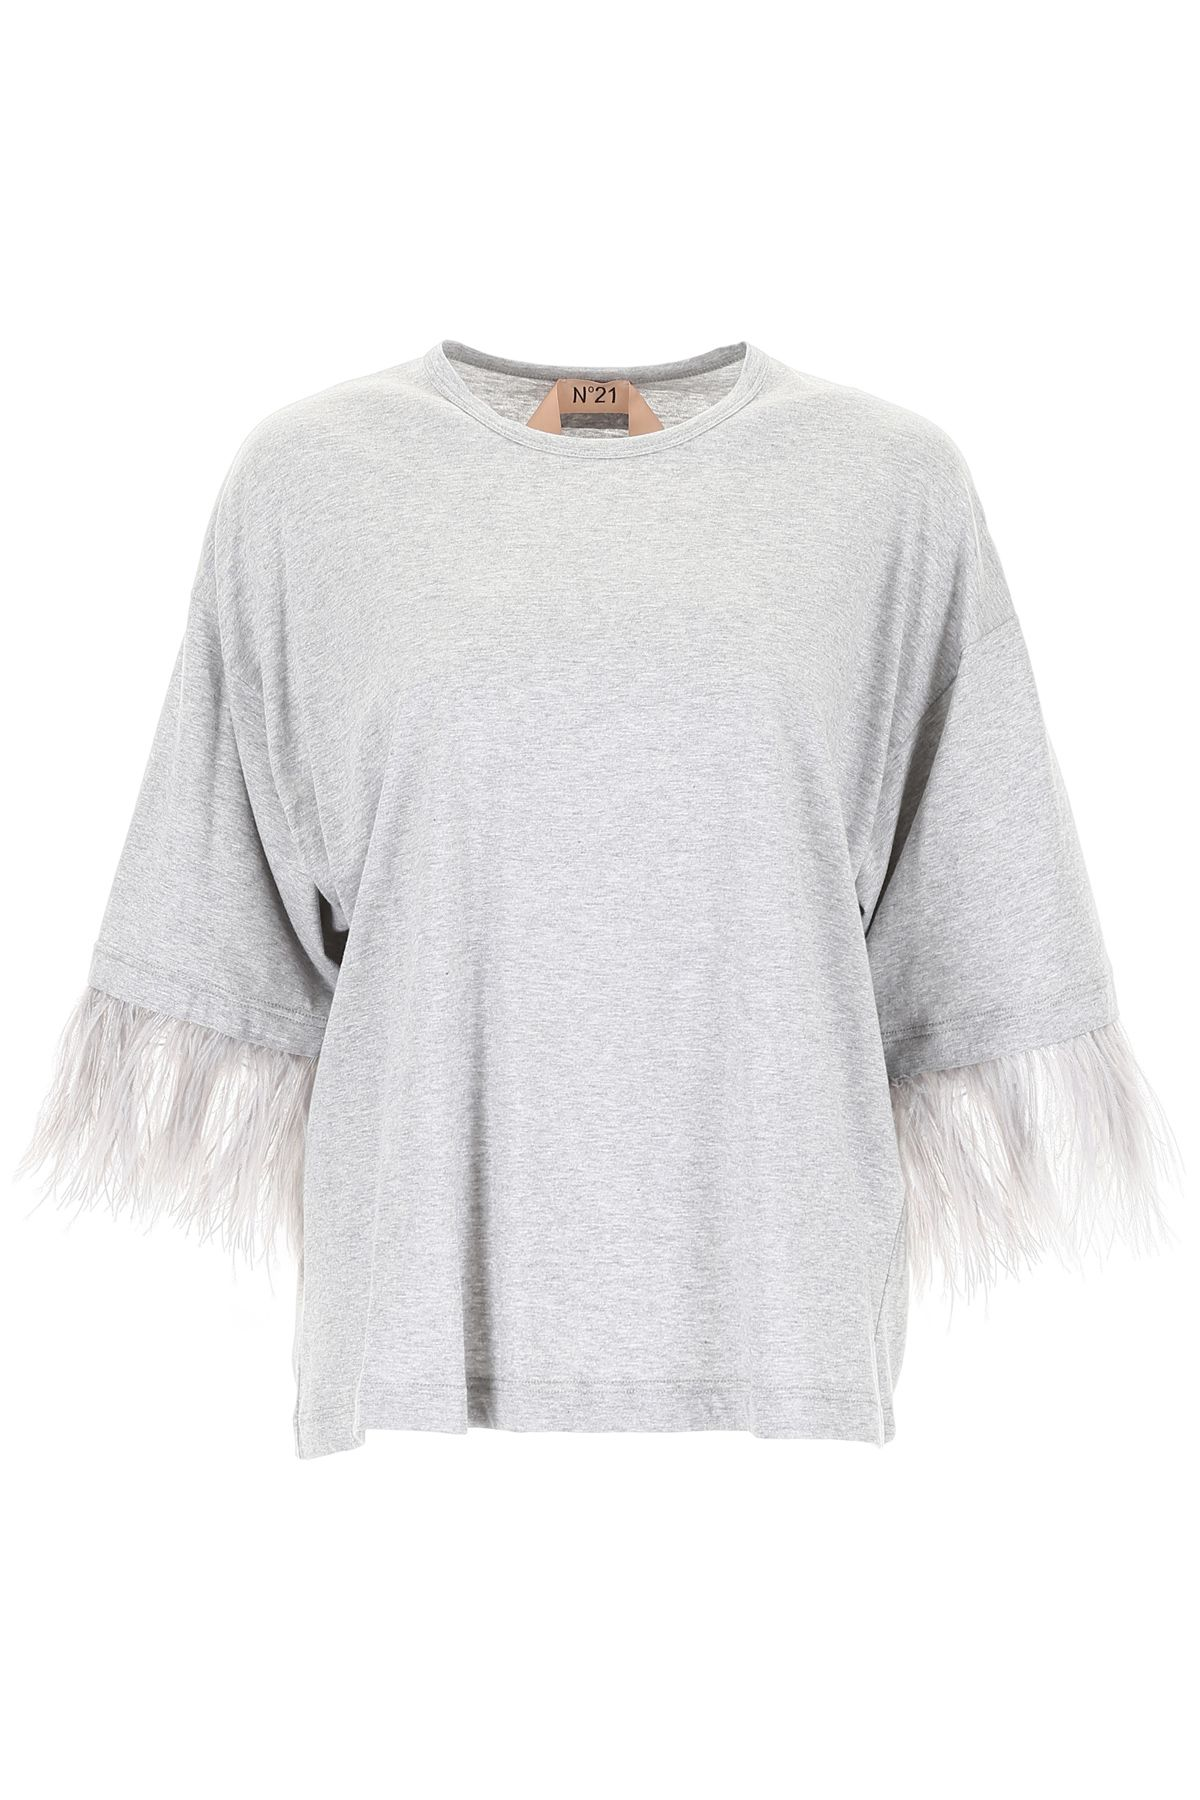 N.21 T-shirt With Ostrich Feathers